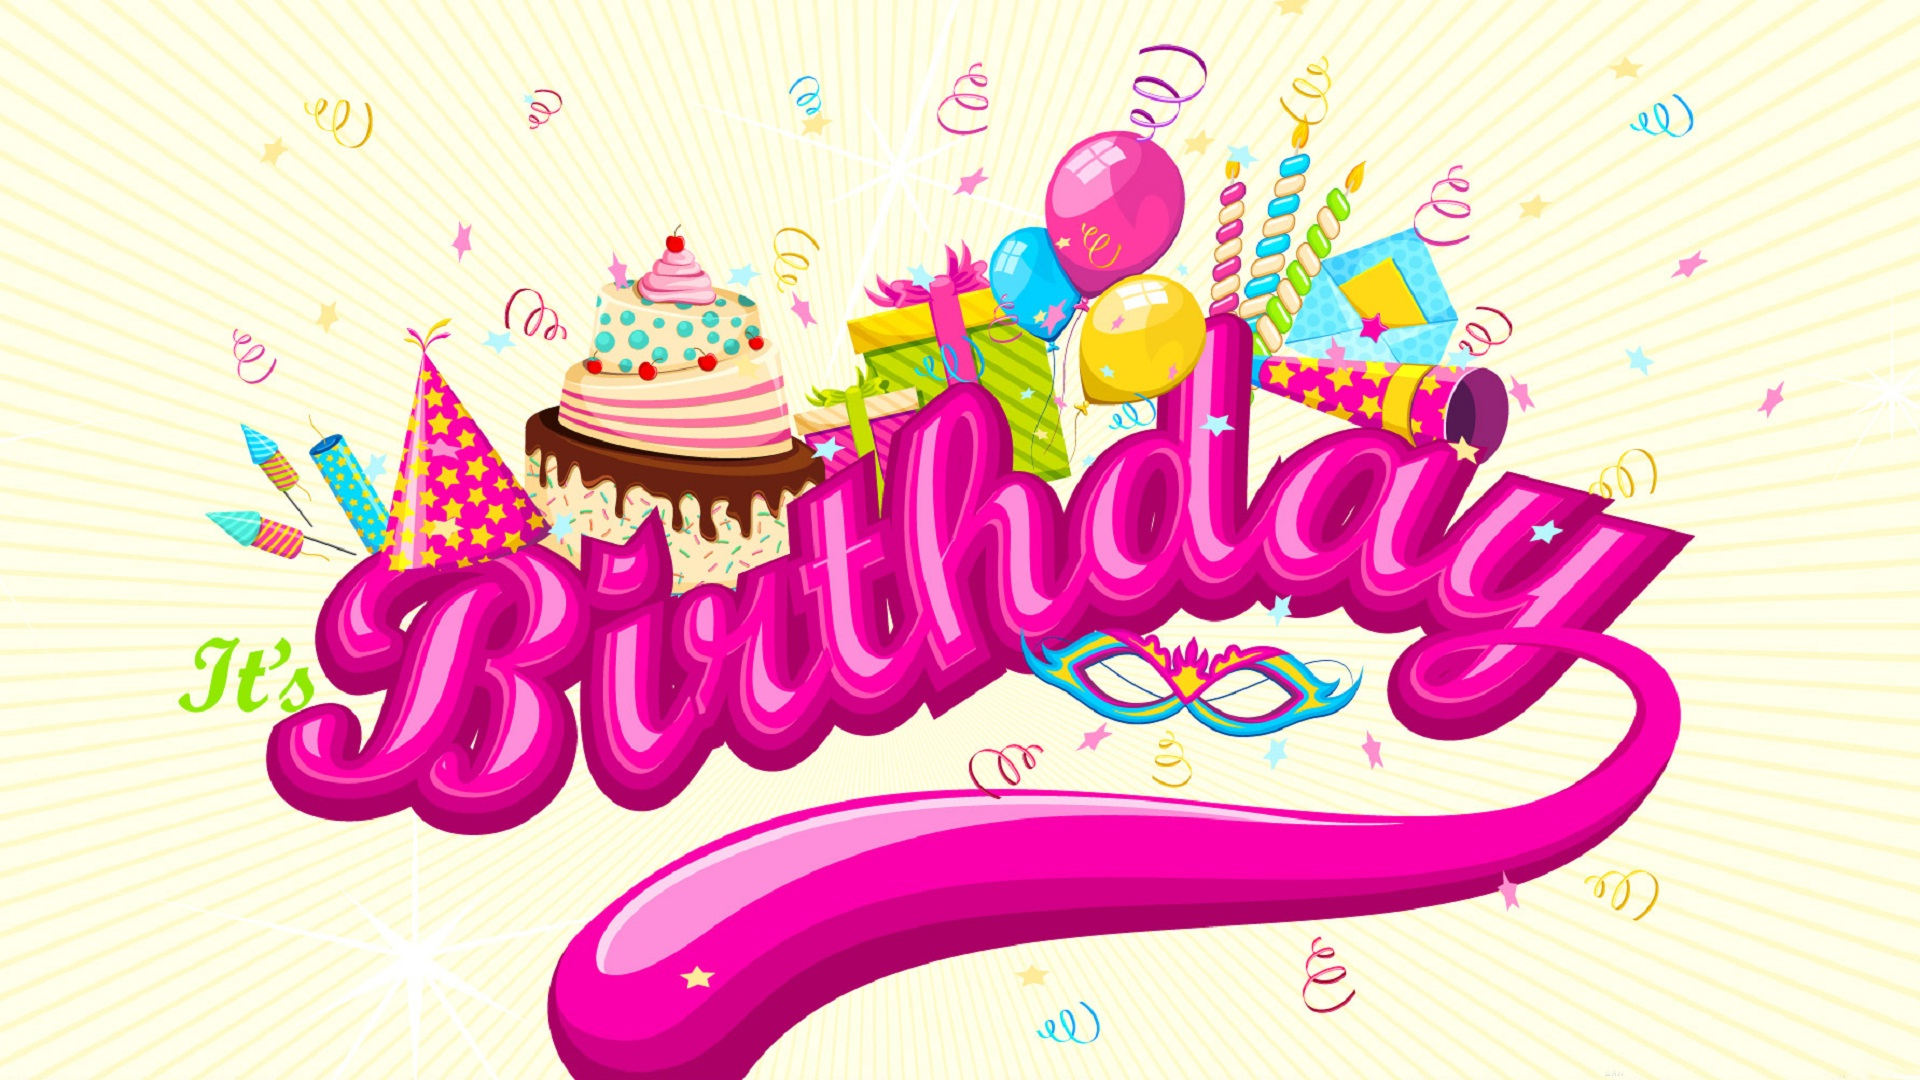 happy birthday wishes hd images ; Birthday-wishes-and-greetings-wallpaper